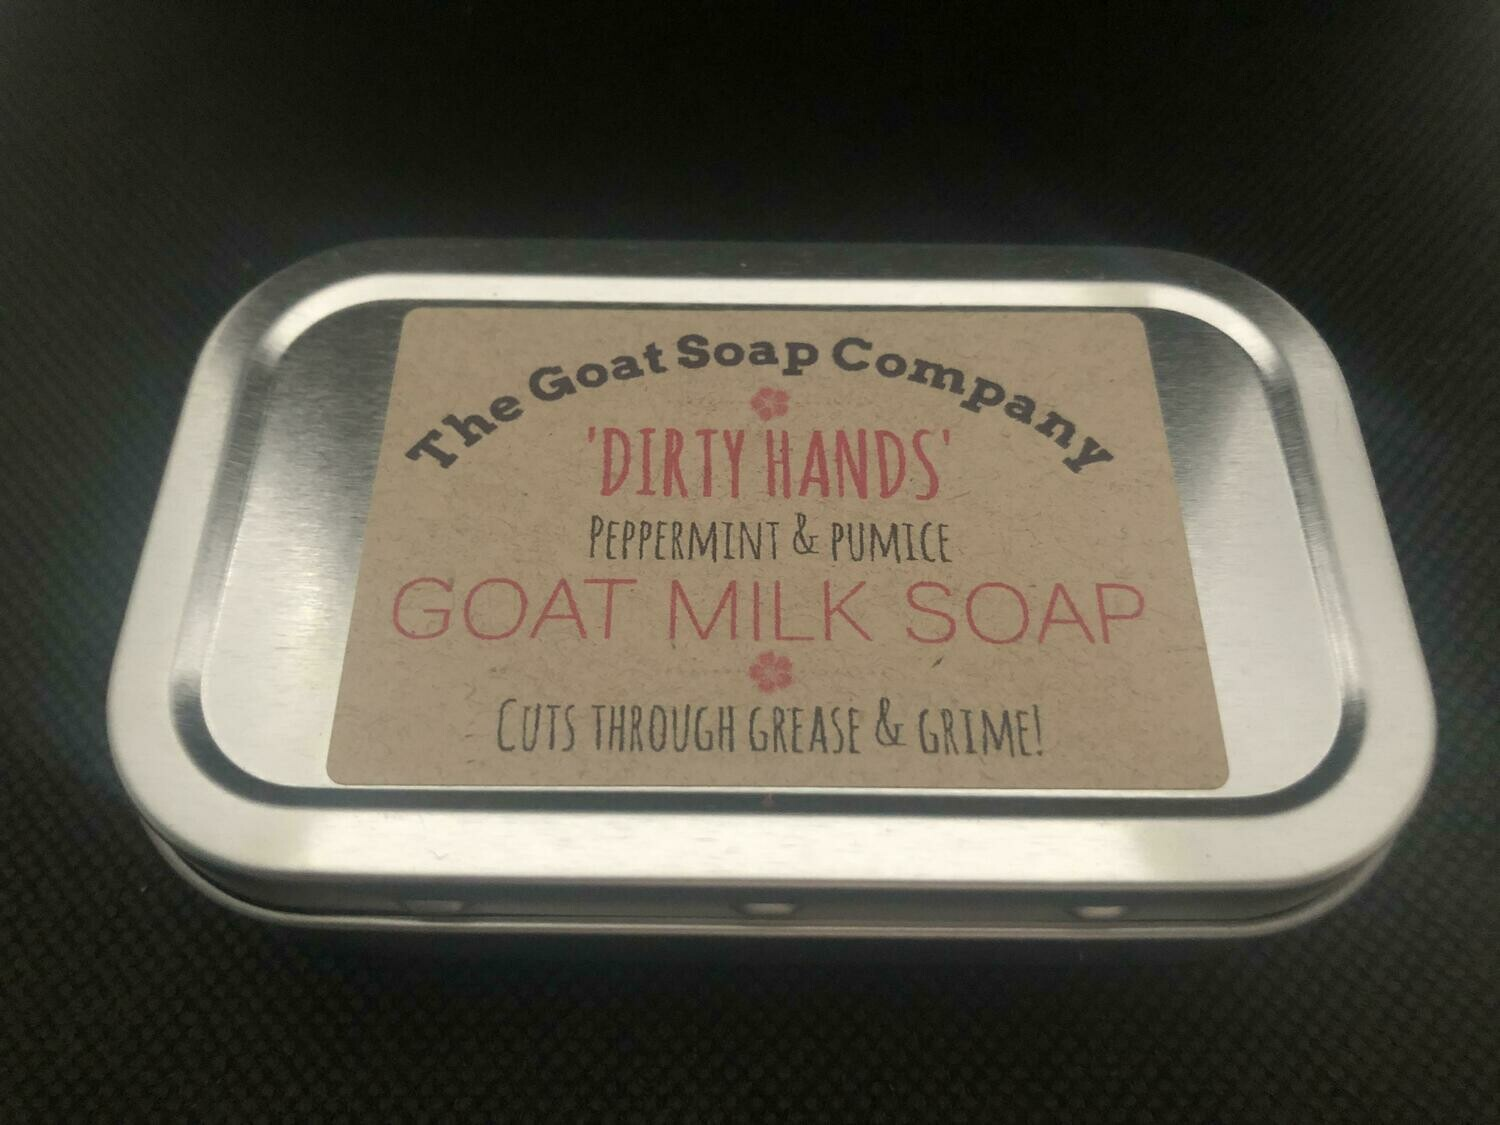 'Dirty Hands' Peppermint & Pumice Goat Milk Soap-In-a-Tin